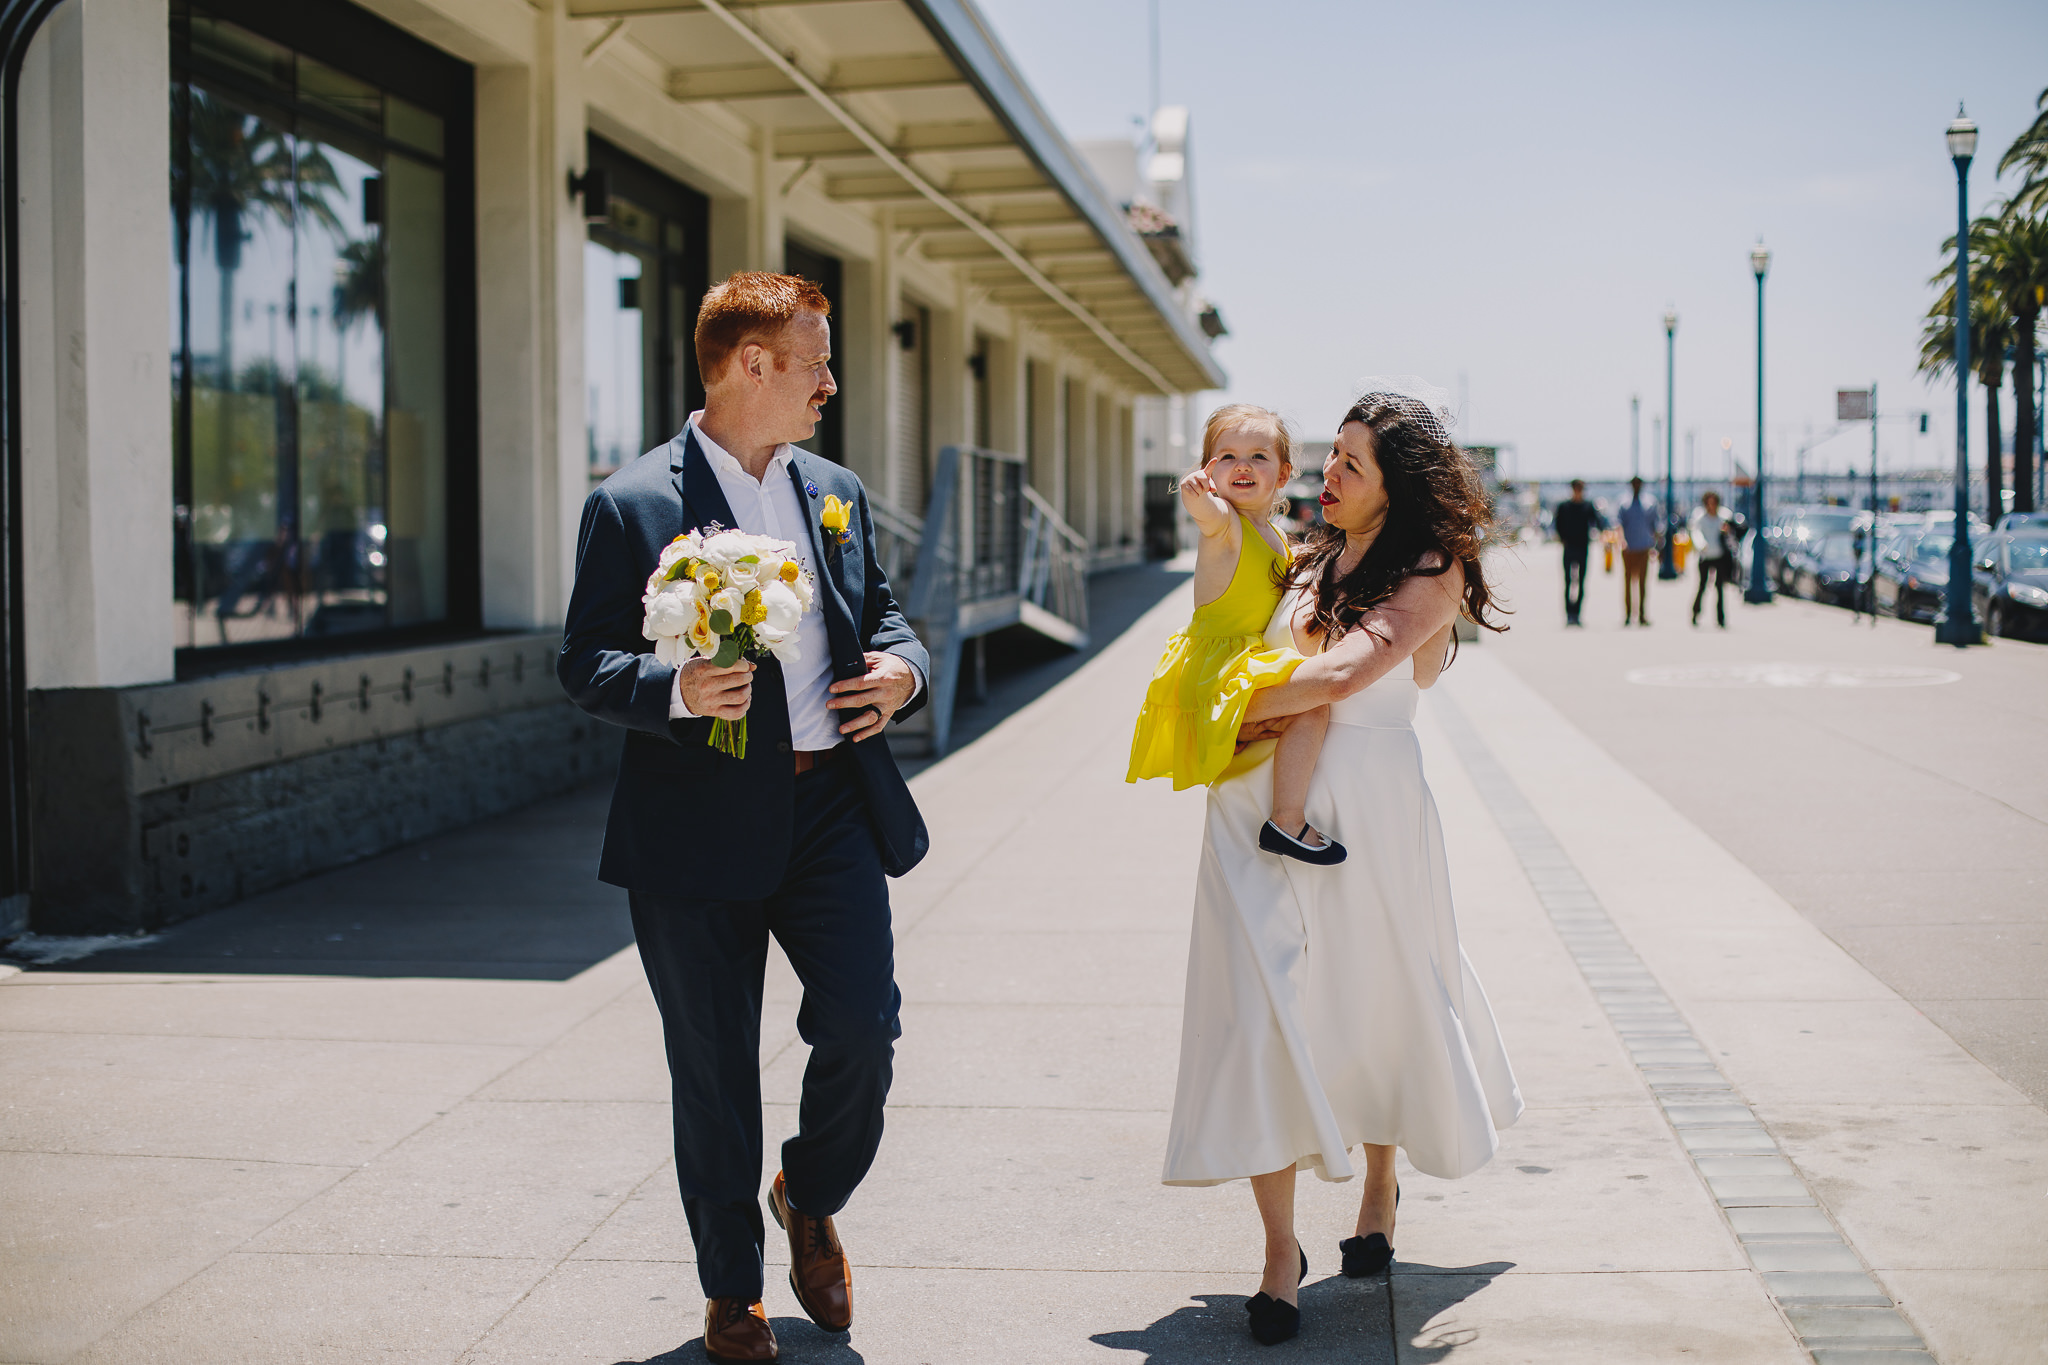 Archer Inspired Photography SF City Hall Elopement Wedding Lifestyle Documentary Affordable Photographer-275.jpg